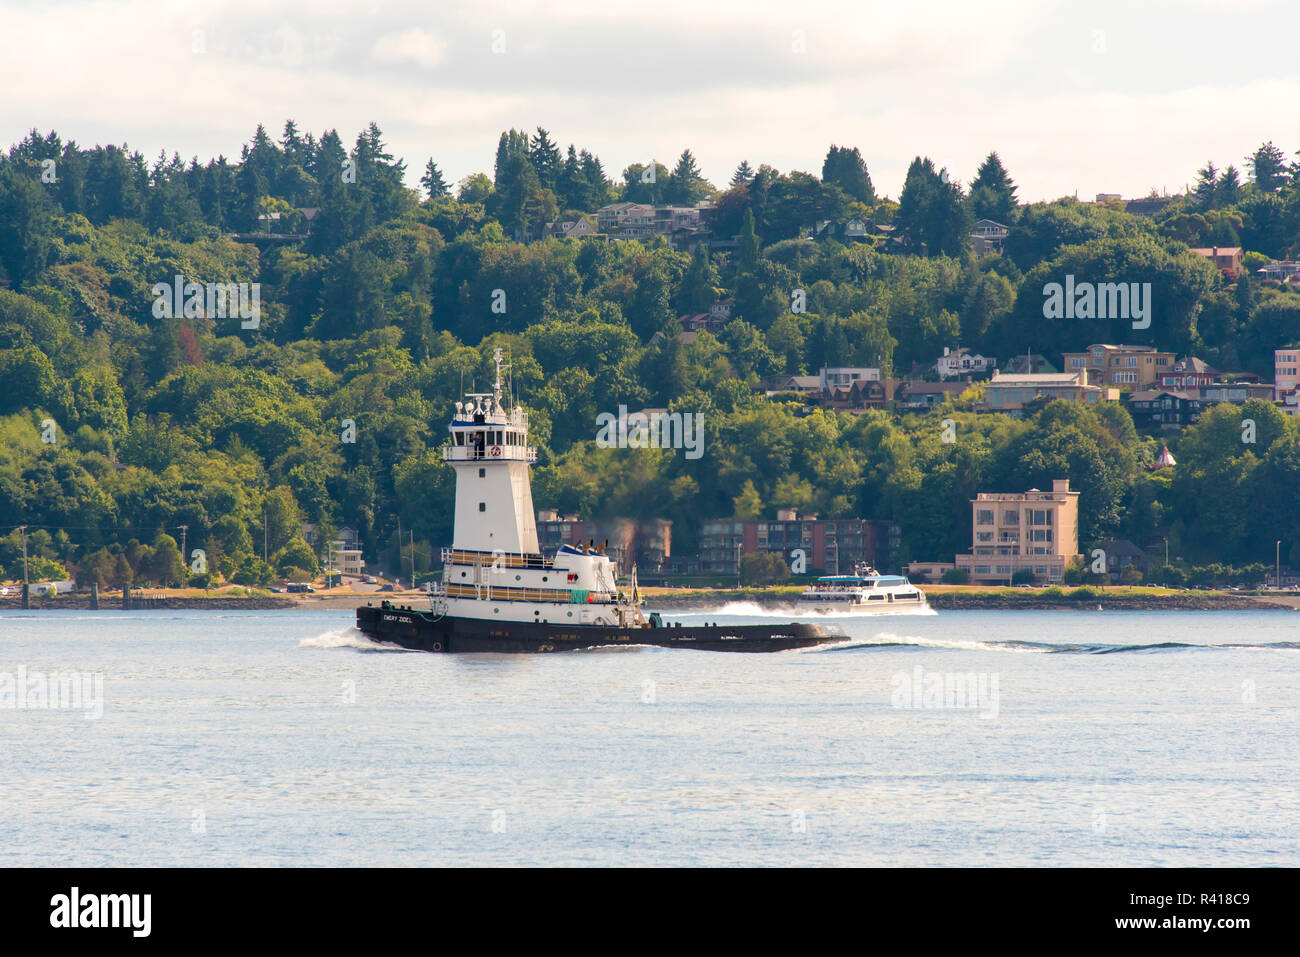 USA, Washington State, Puget Sound. Emery Zidell tugboat. Unique tower. Passes Bremerton fast ferry - Stock Image